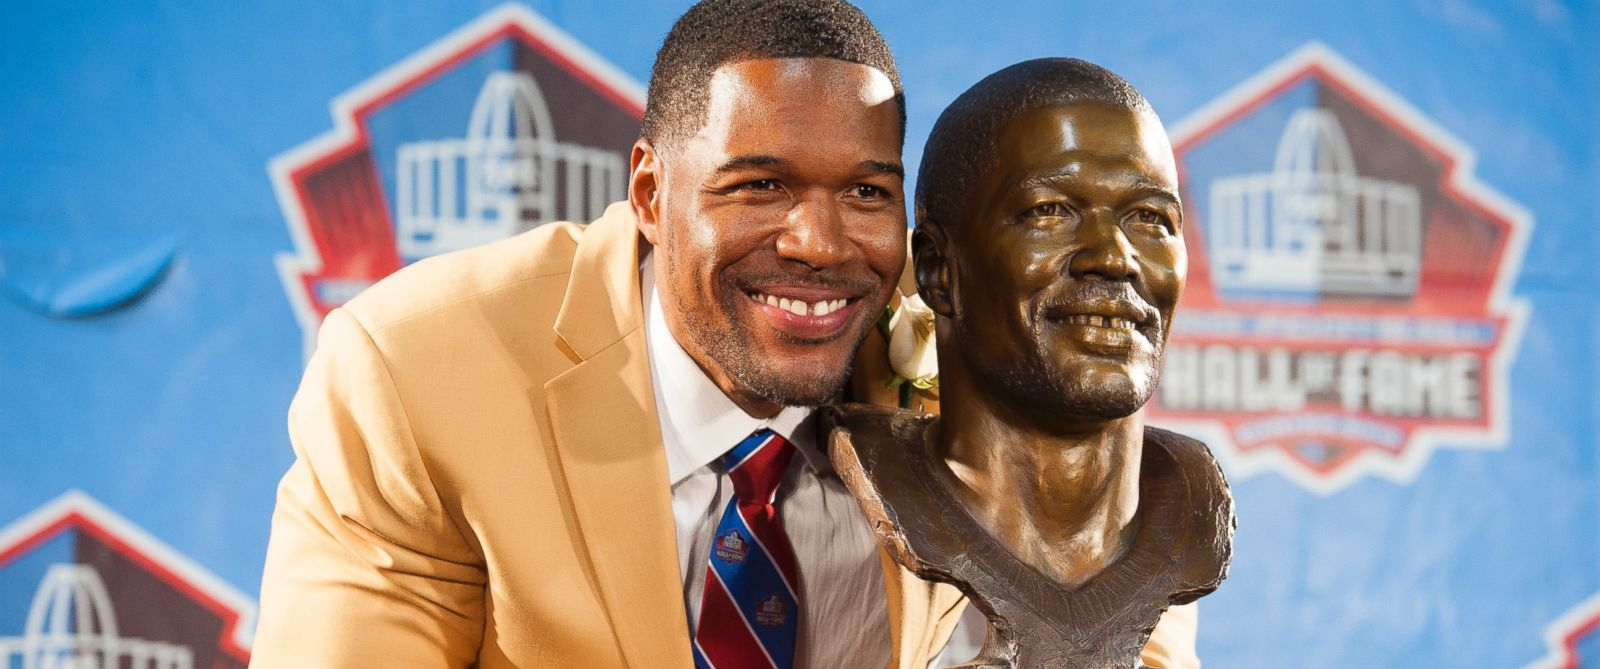 PHOTO: Michael Strahan with his bust during the NFL Class of 2014 Pro Football Hall of Fame Enshrinement Ceremony at Fawcett Stadium in Canton, Ohio, August 2, 2014.